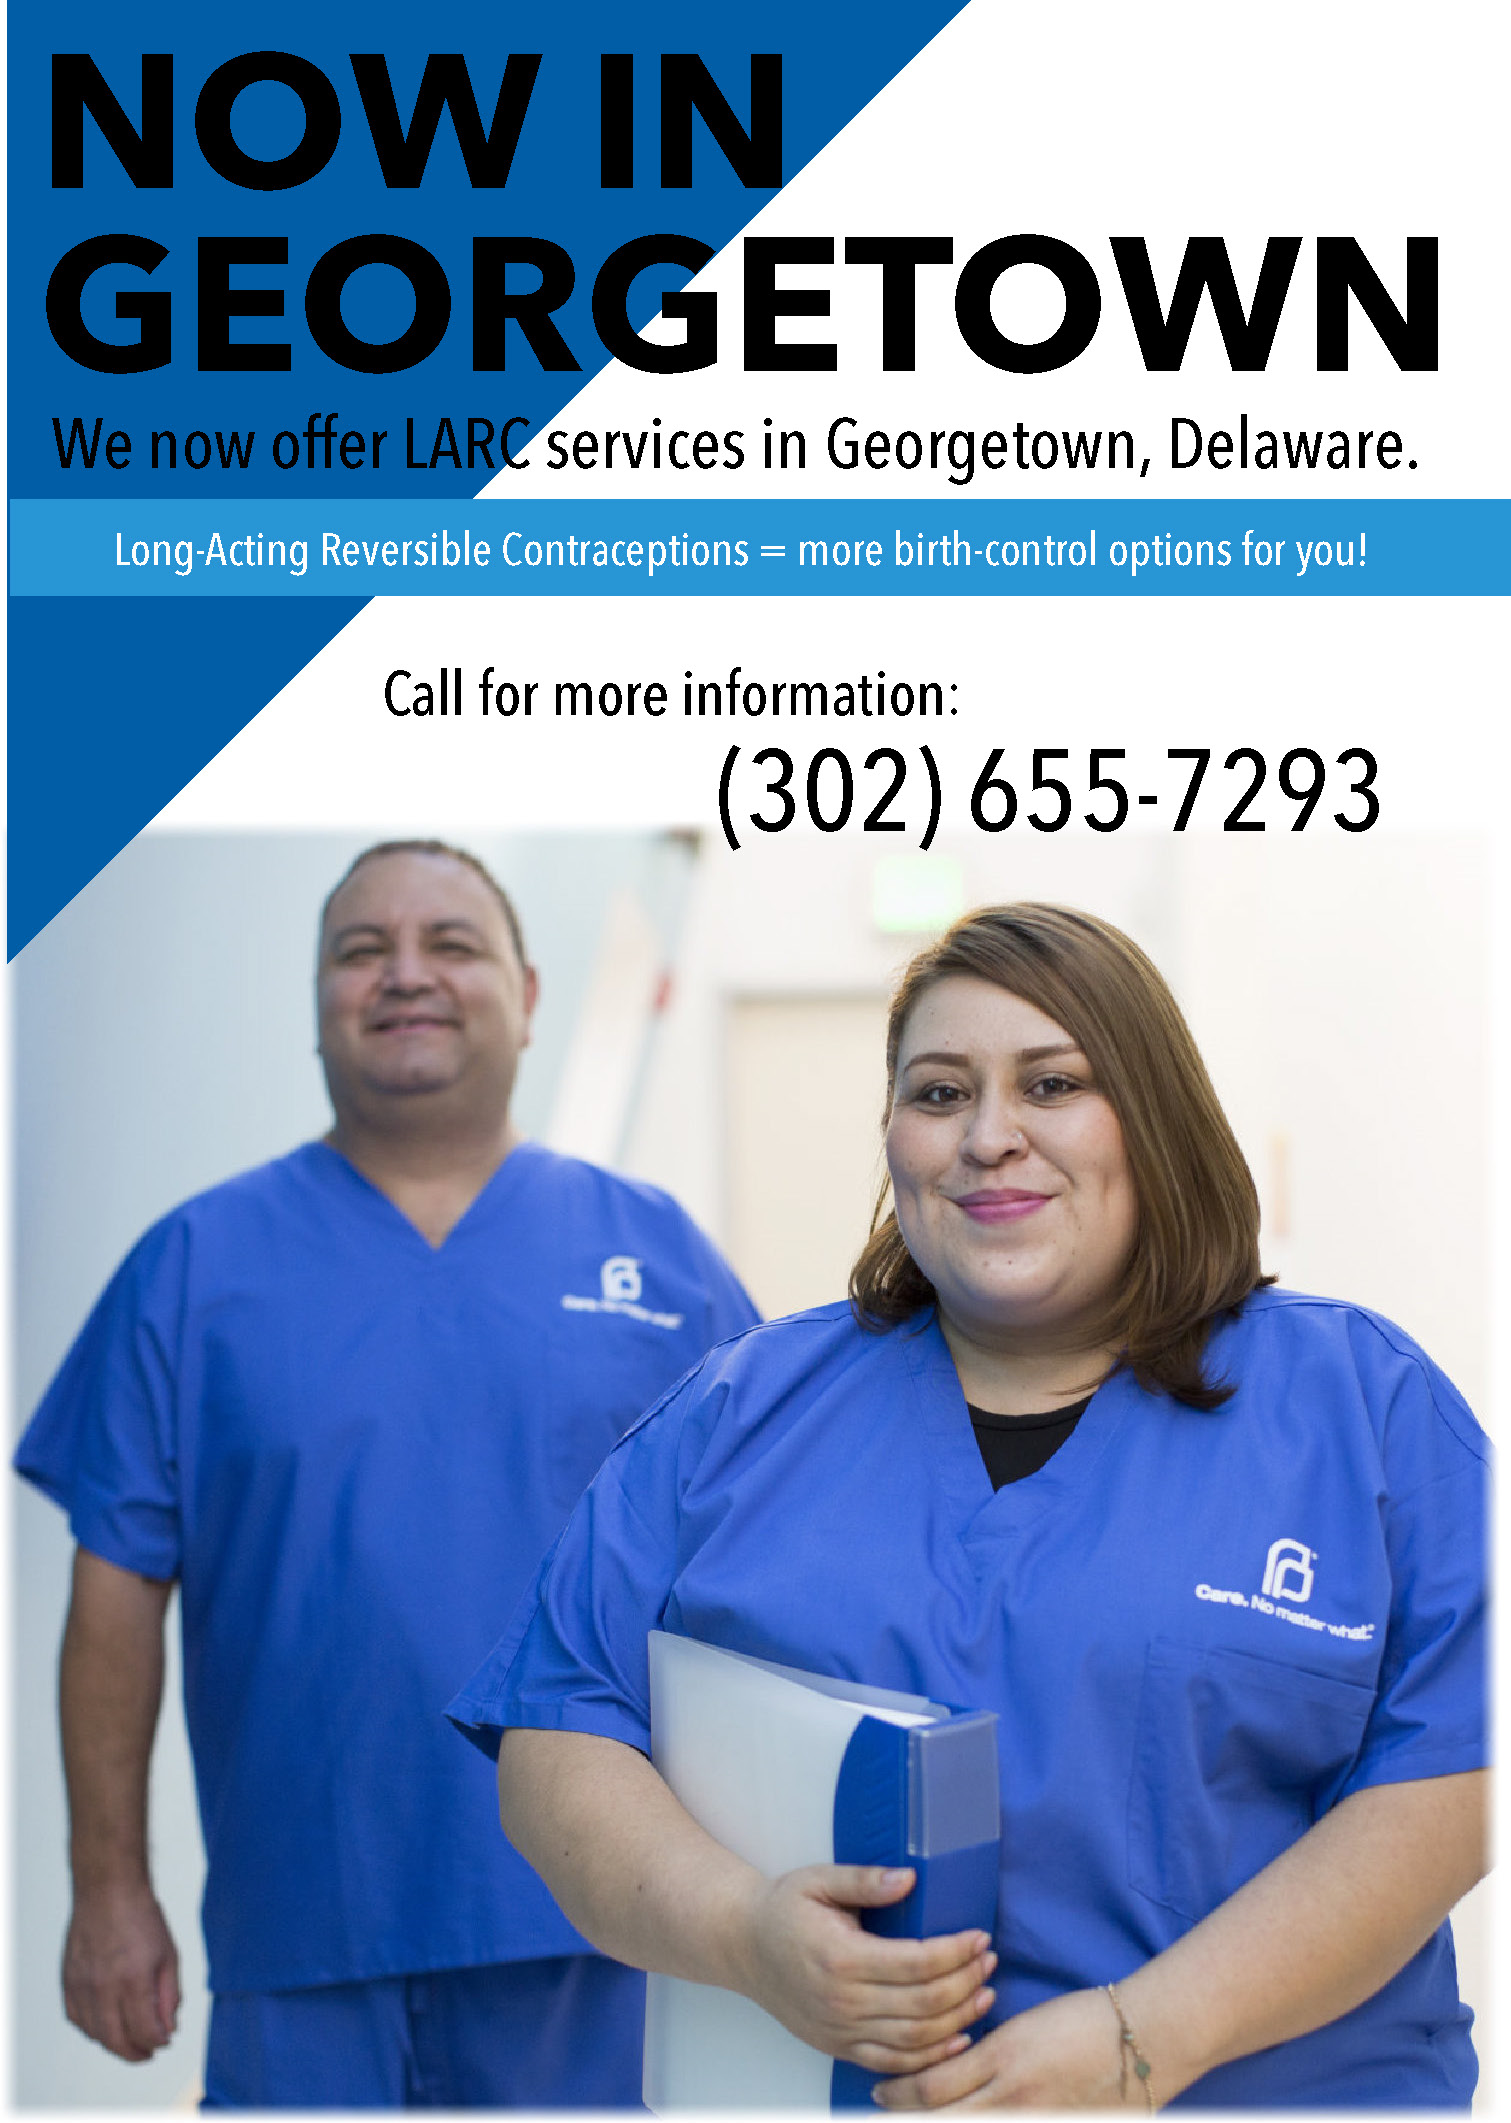 We now offer LARC services in Georgetown, Delaware. Call for more information: (302) 655-7293